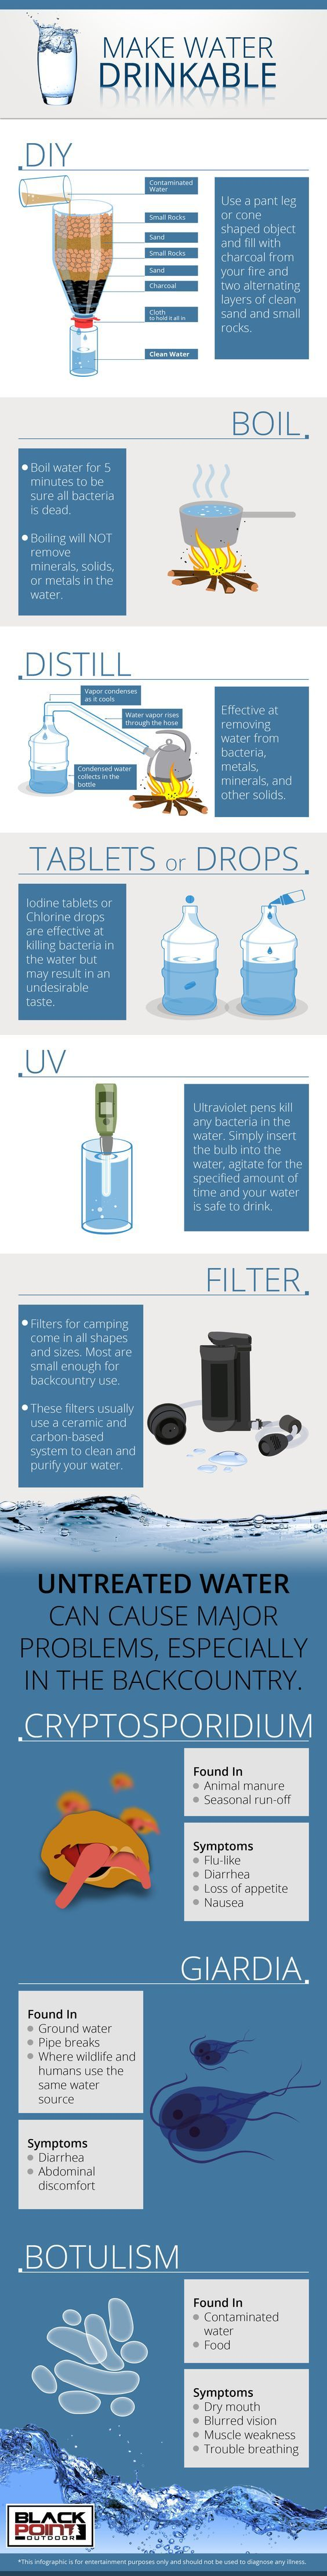 The Best DIY Bushcraft Water Filters For Survival In The Woods - From Desk Jockey To Survival Junkie